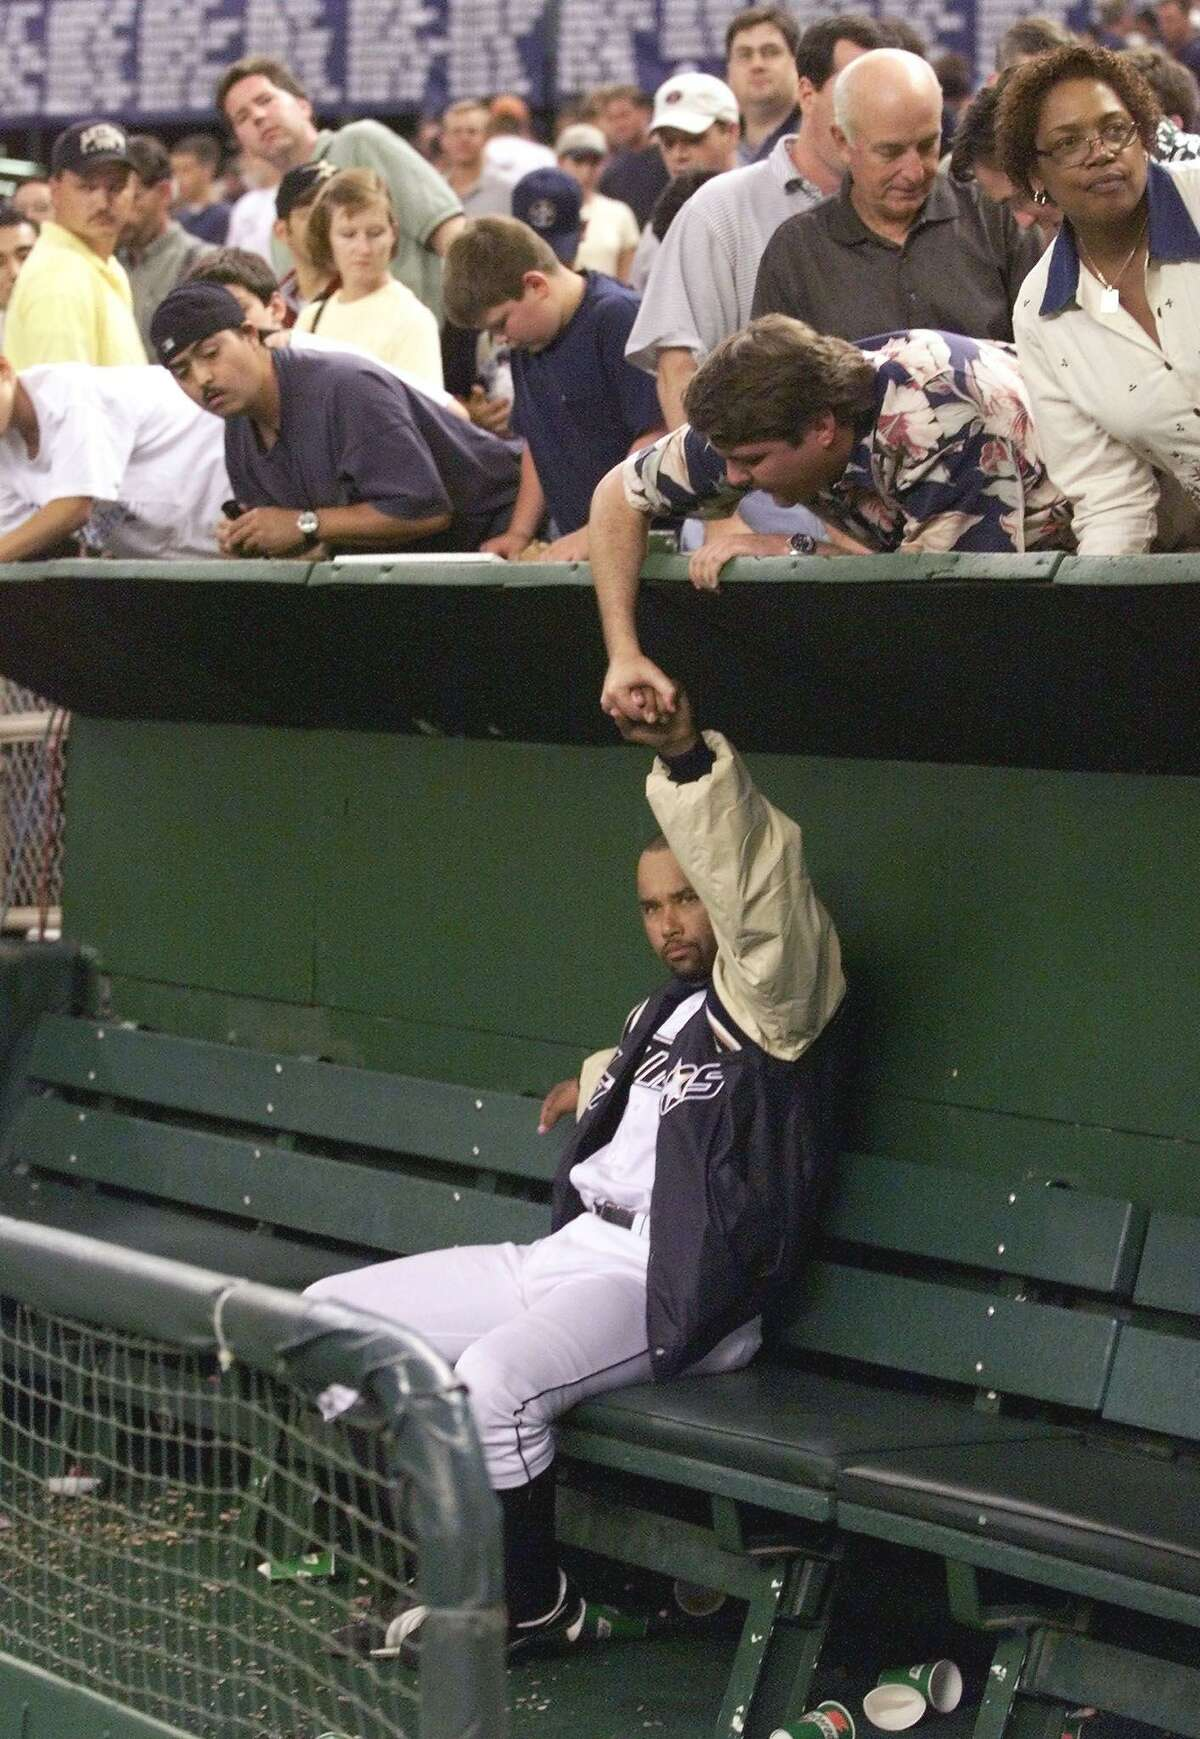 A fan reaches over the dugout to shake hands with pitcher Jose Lima of the Houston Astros after game four of the National League Divisional Series October 9, 1999 at the Astrodome. The Braves won the game 7-5 to win the best-of-five game series 3-1 to advance to the NLCS against the New York Mets.